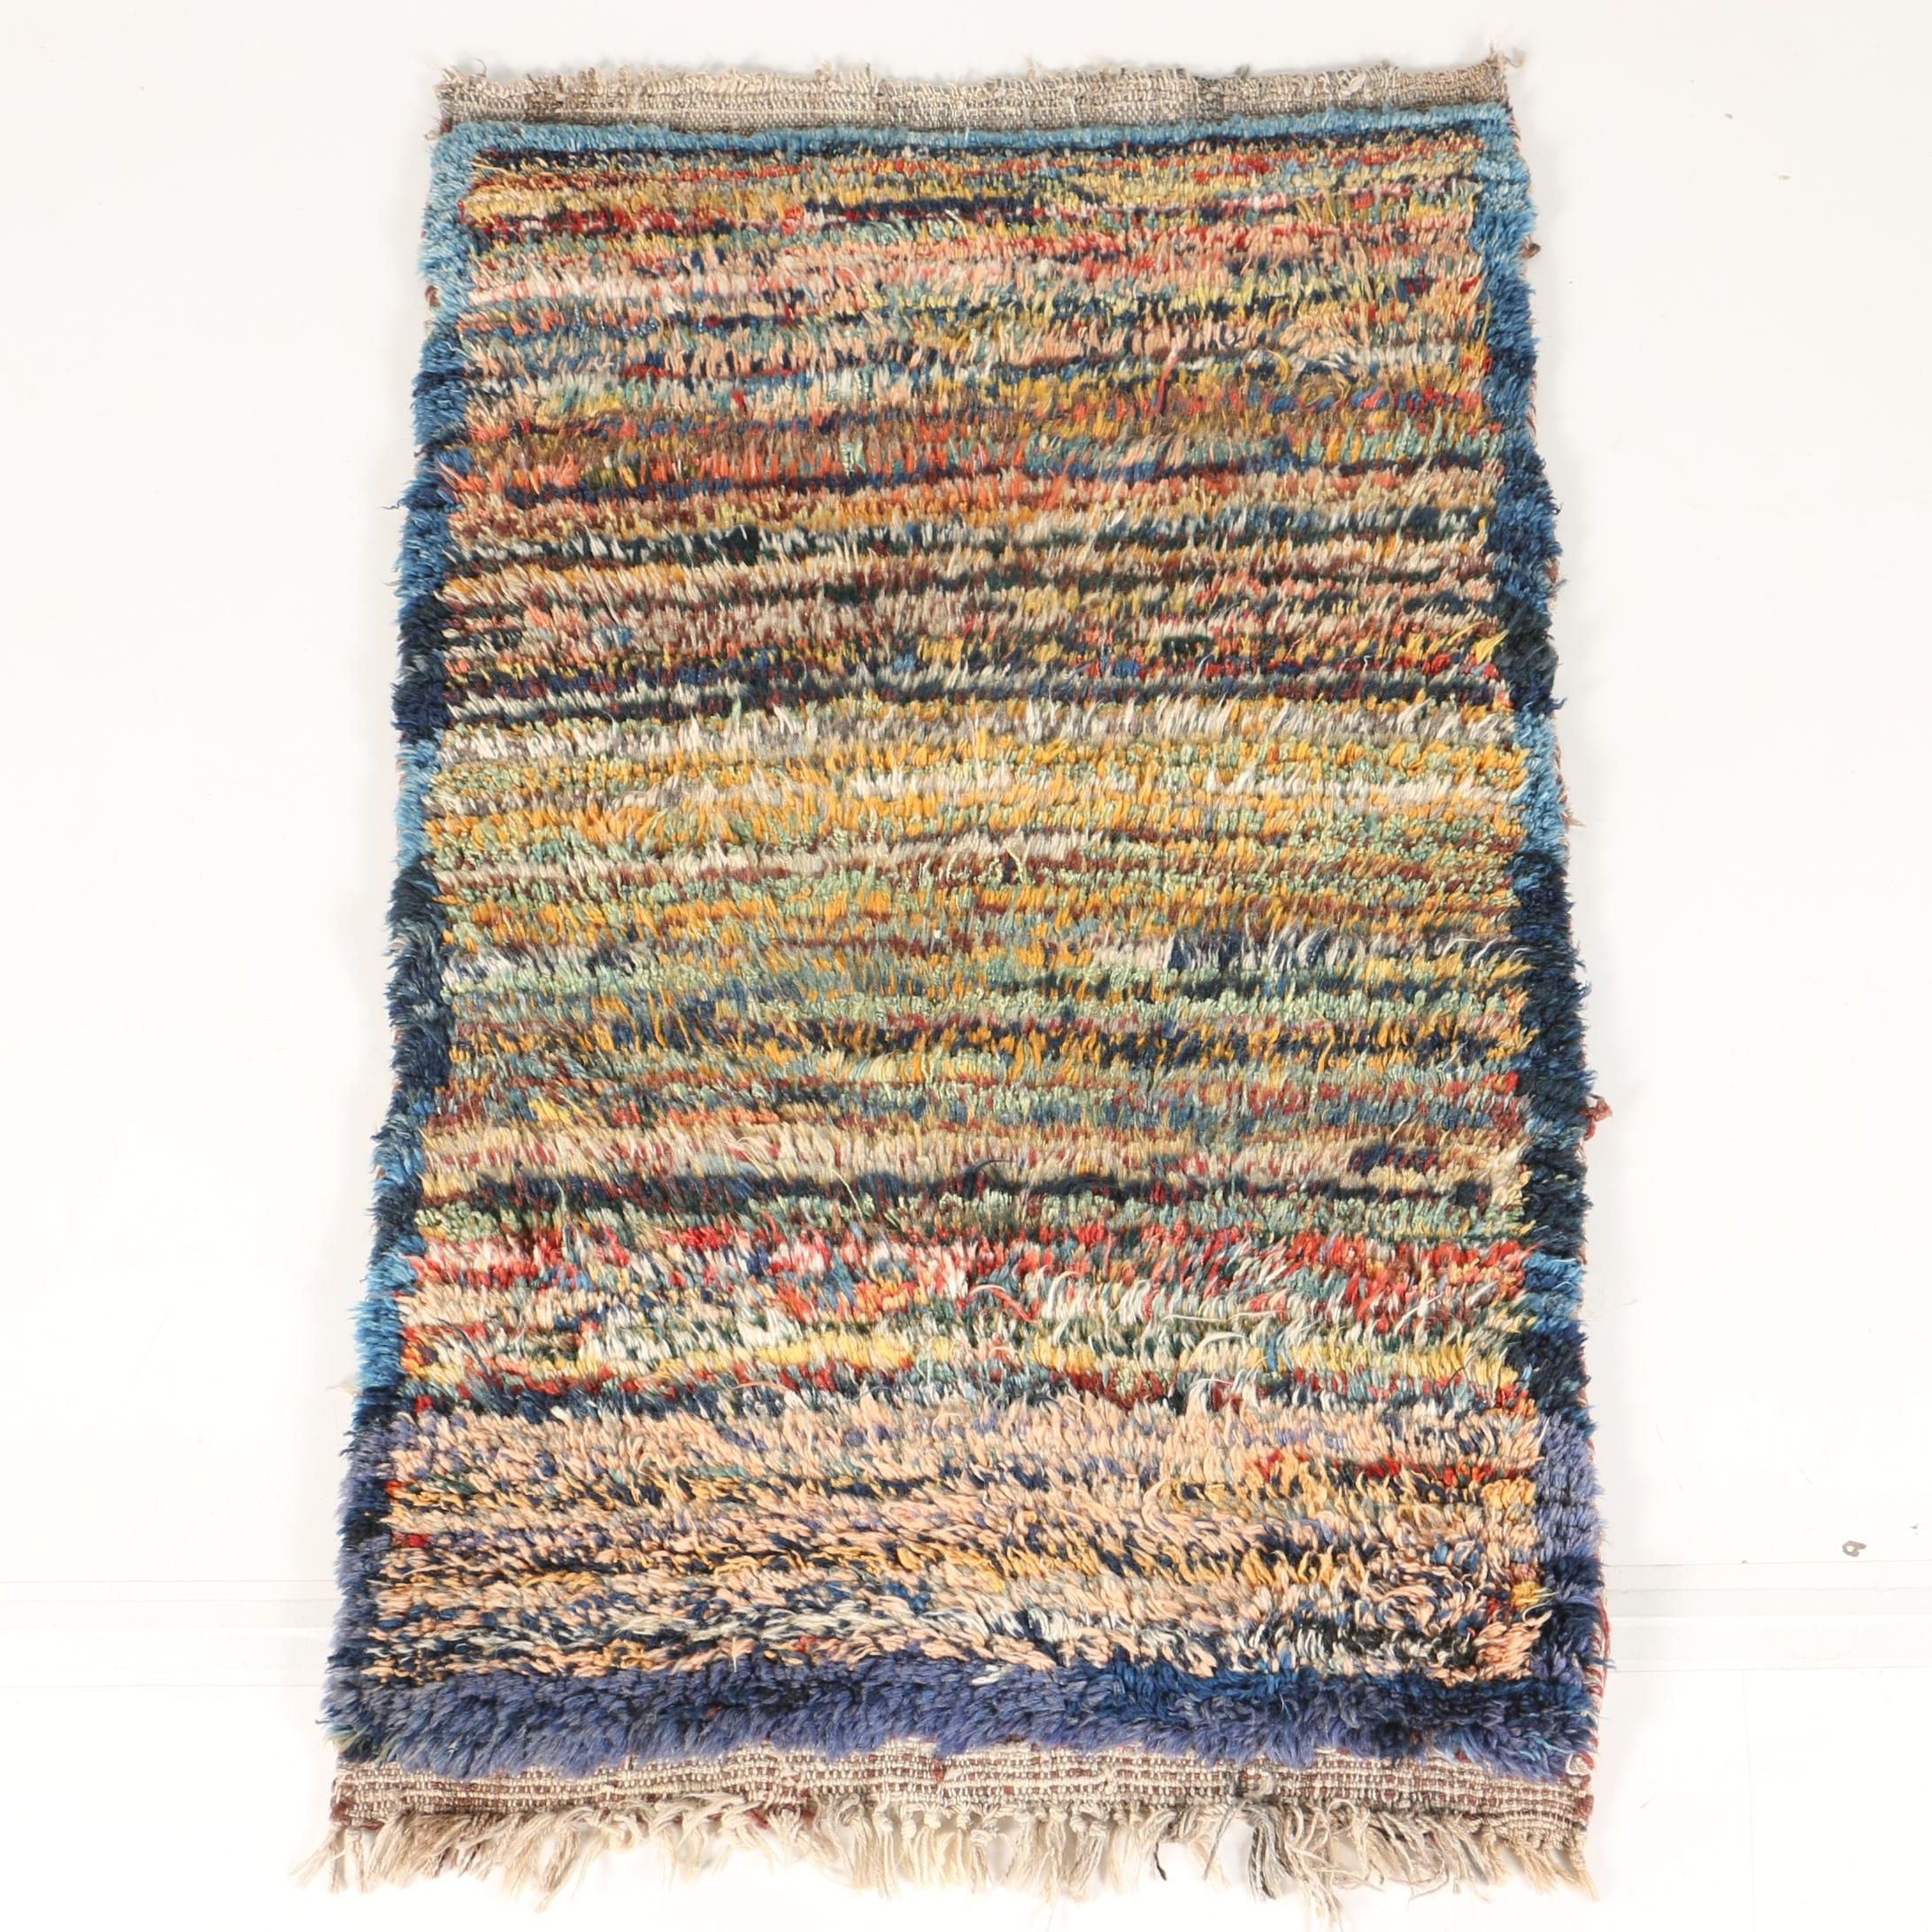 Hand-Knotted Shaggy Wool Accent Rug